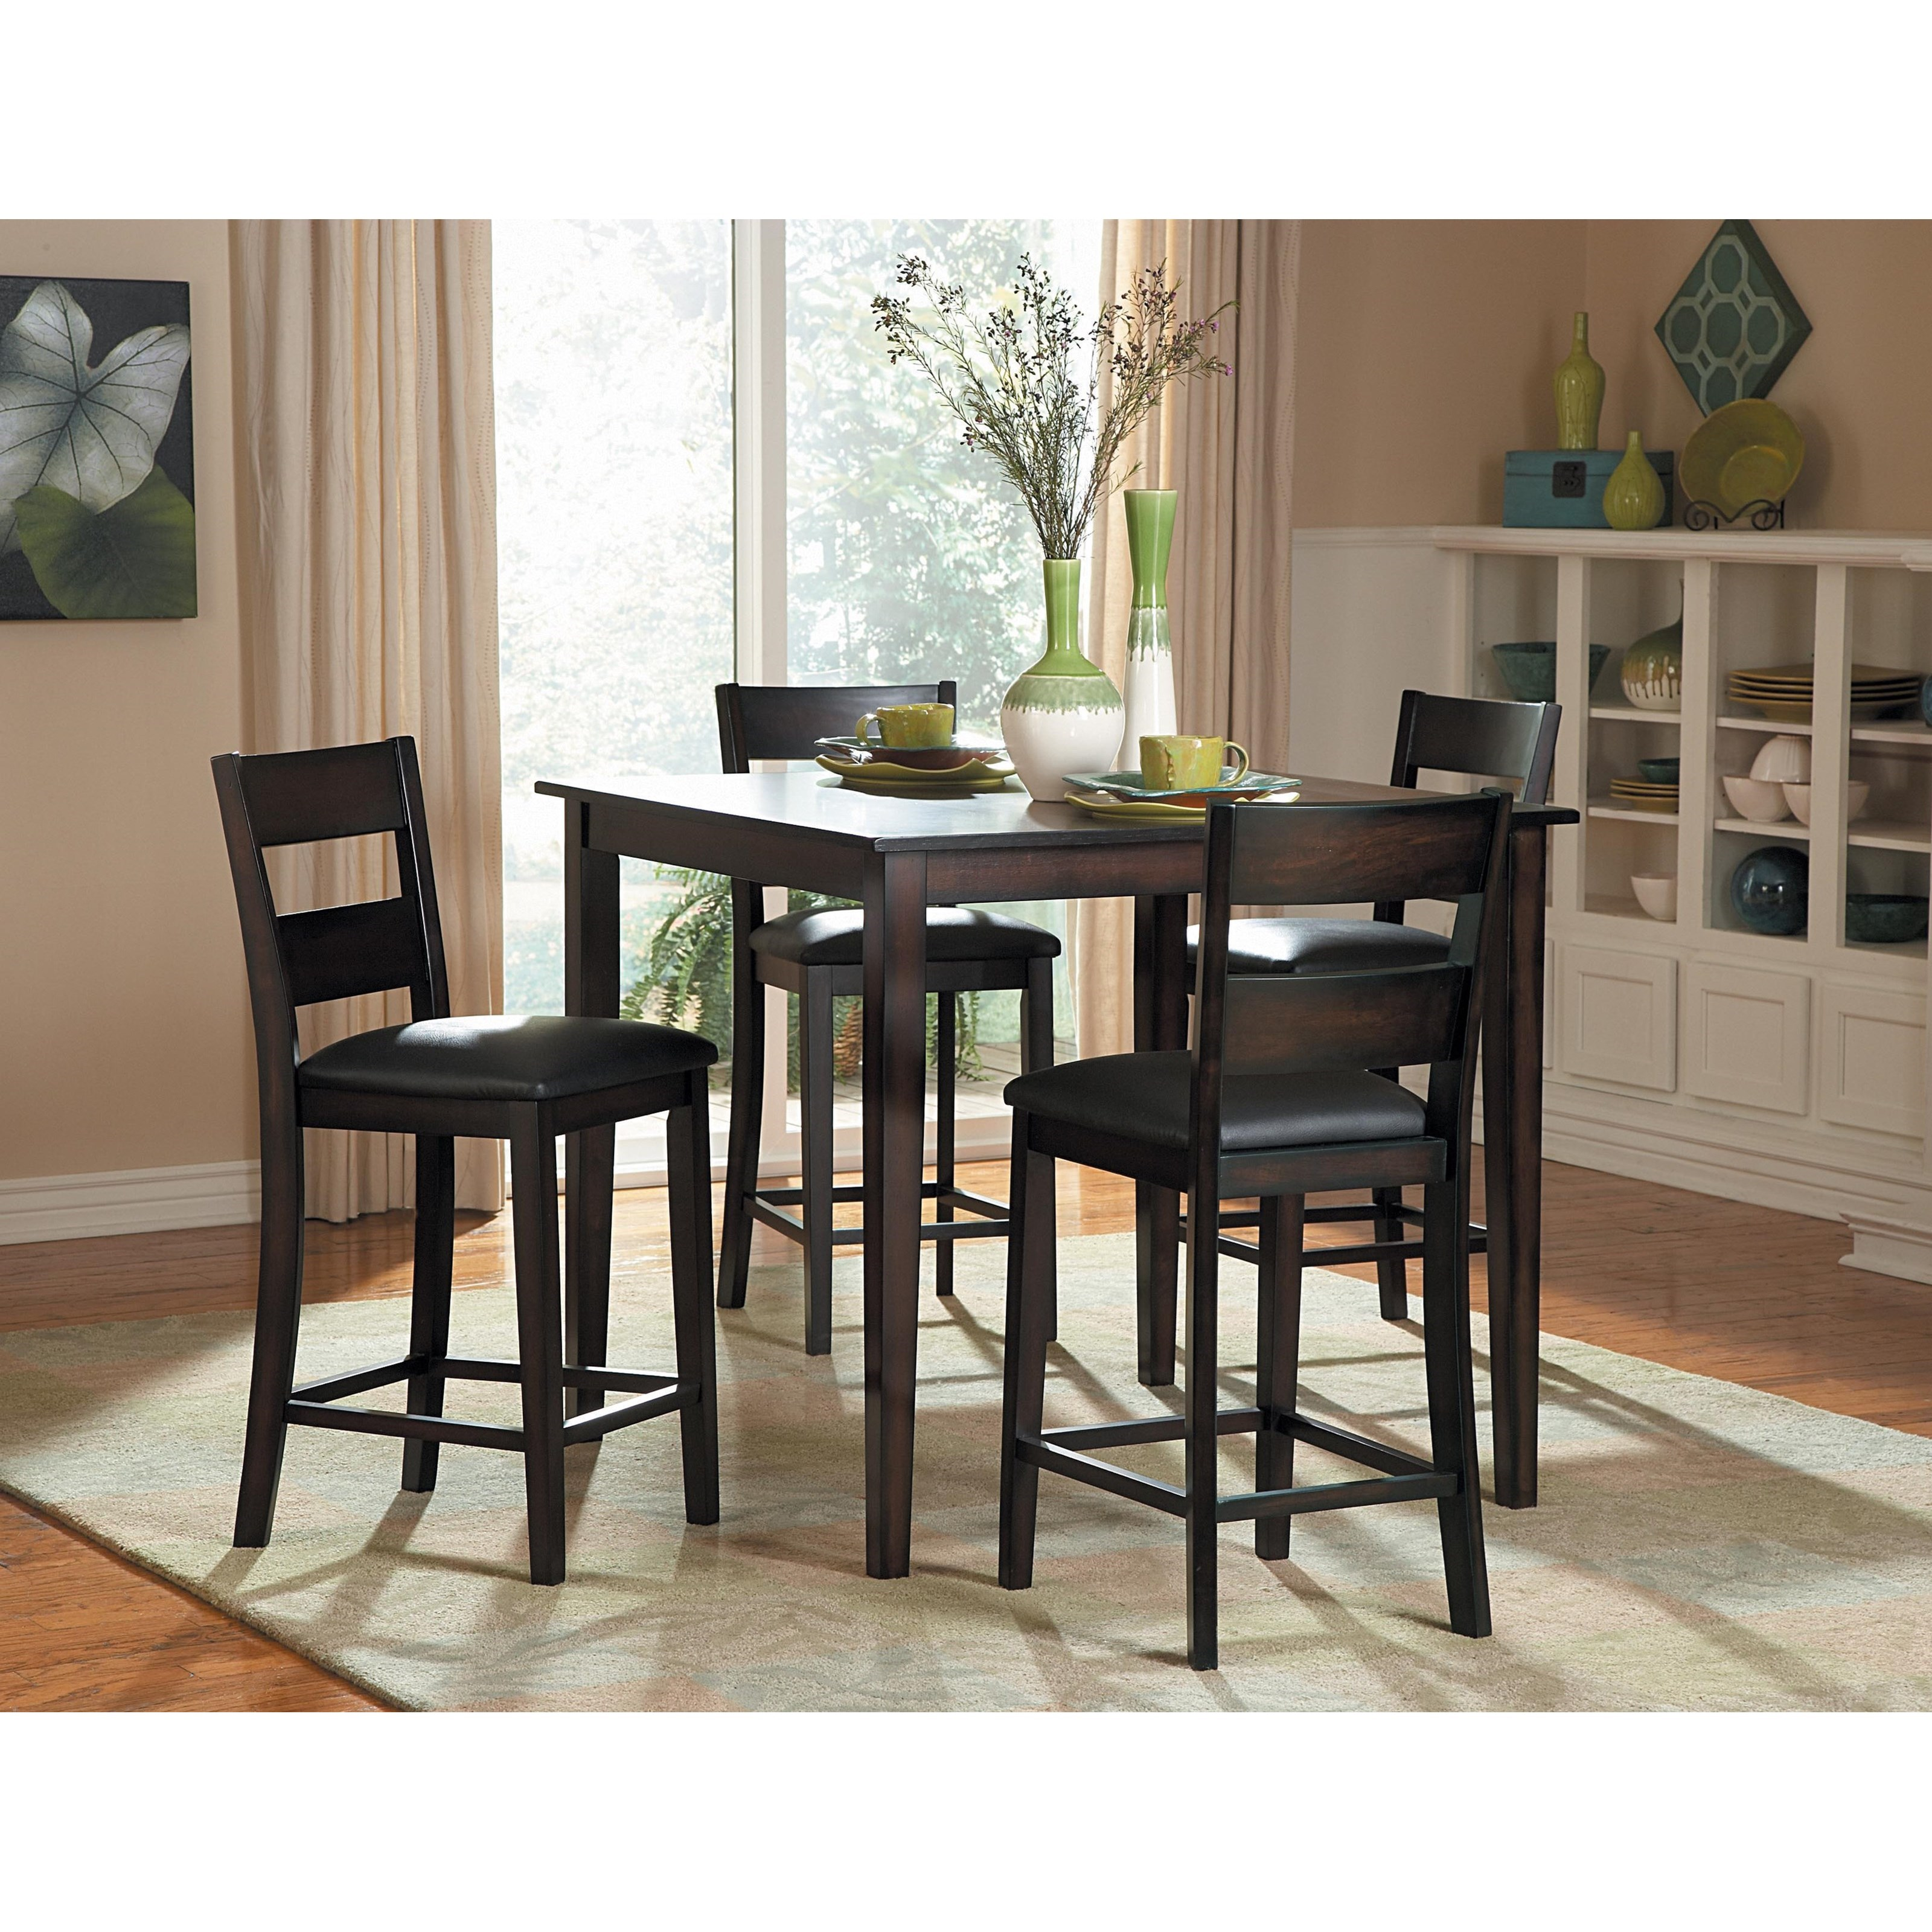 Griffin 5Pc Counter Height Table and Chair Set by Homelegance at Beck's Furniture